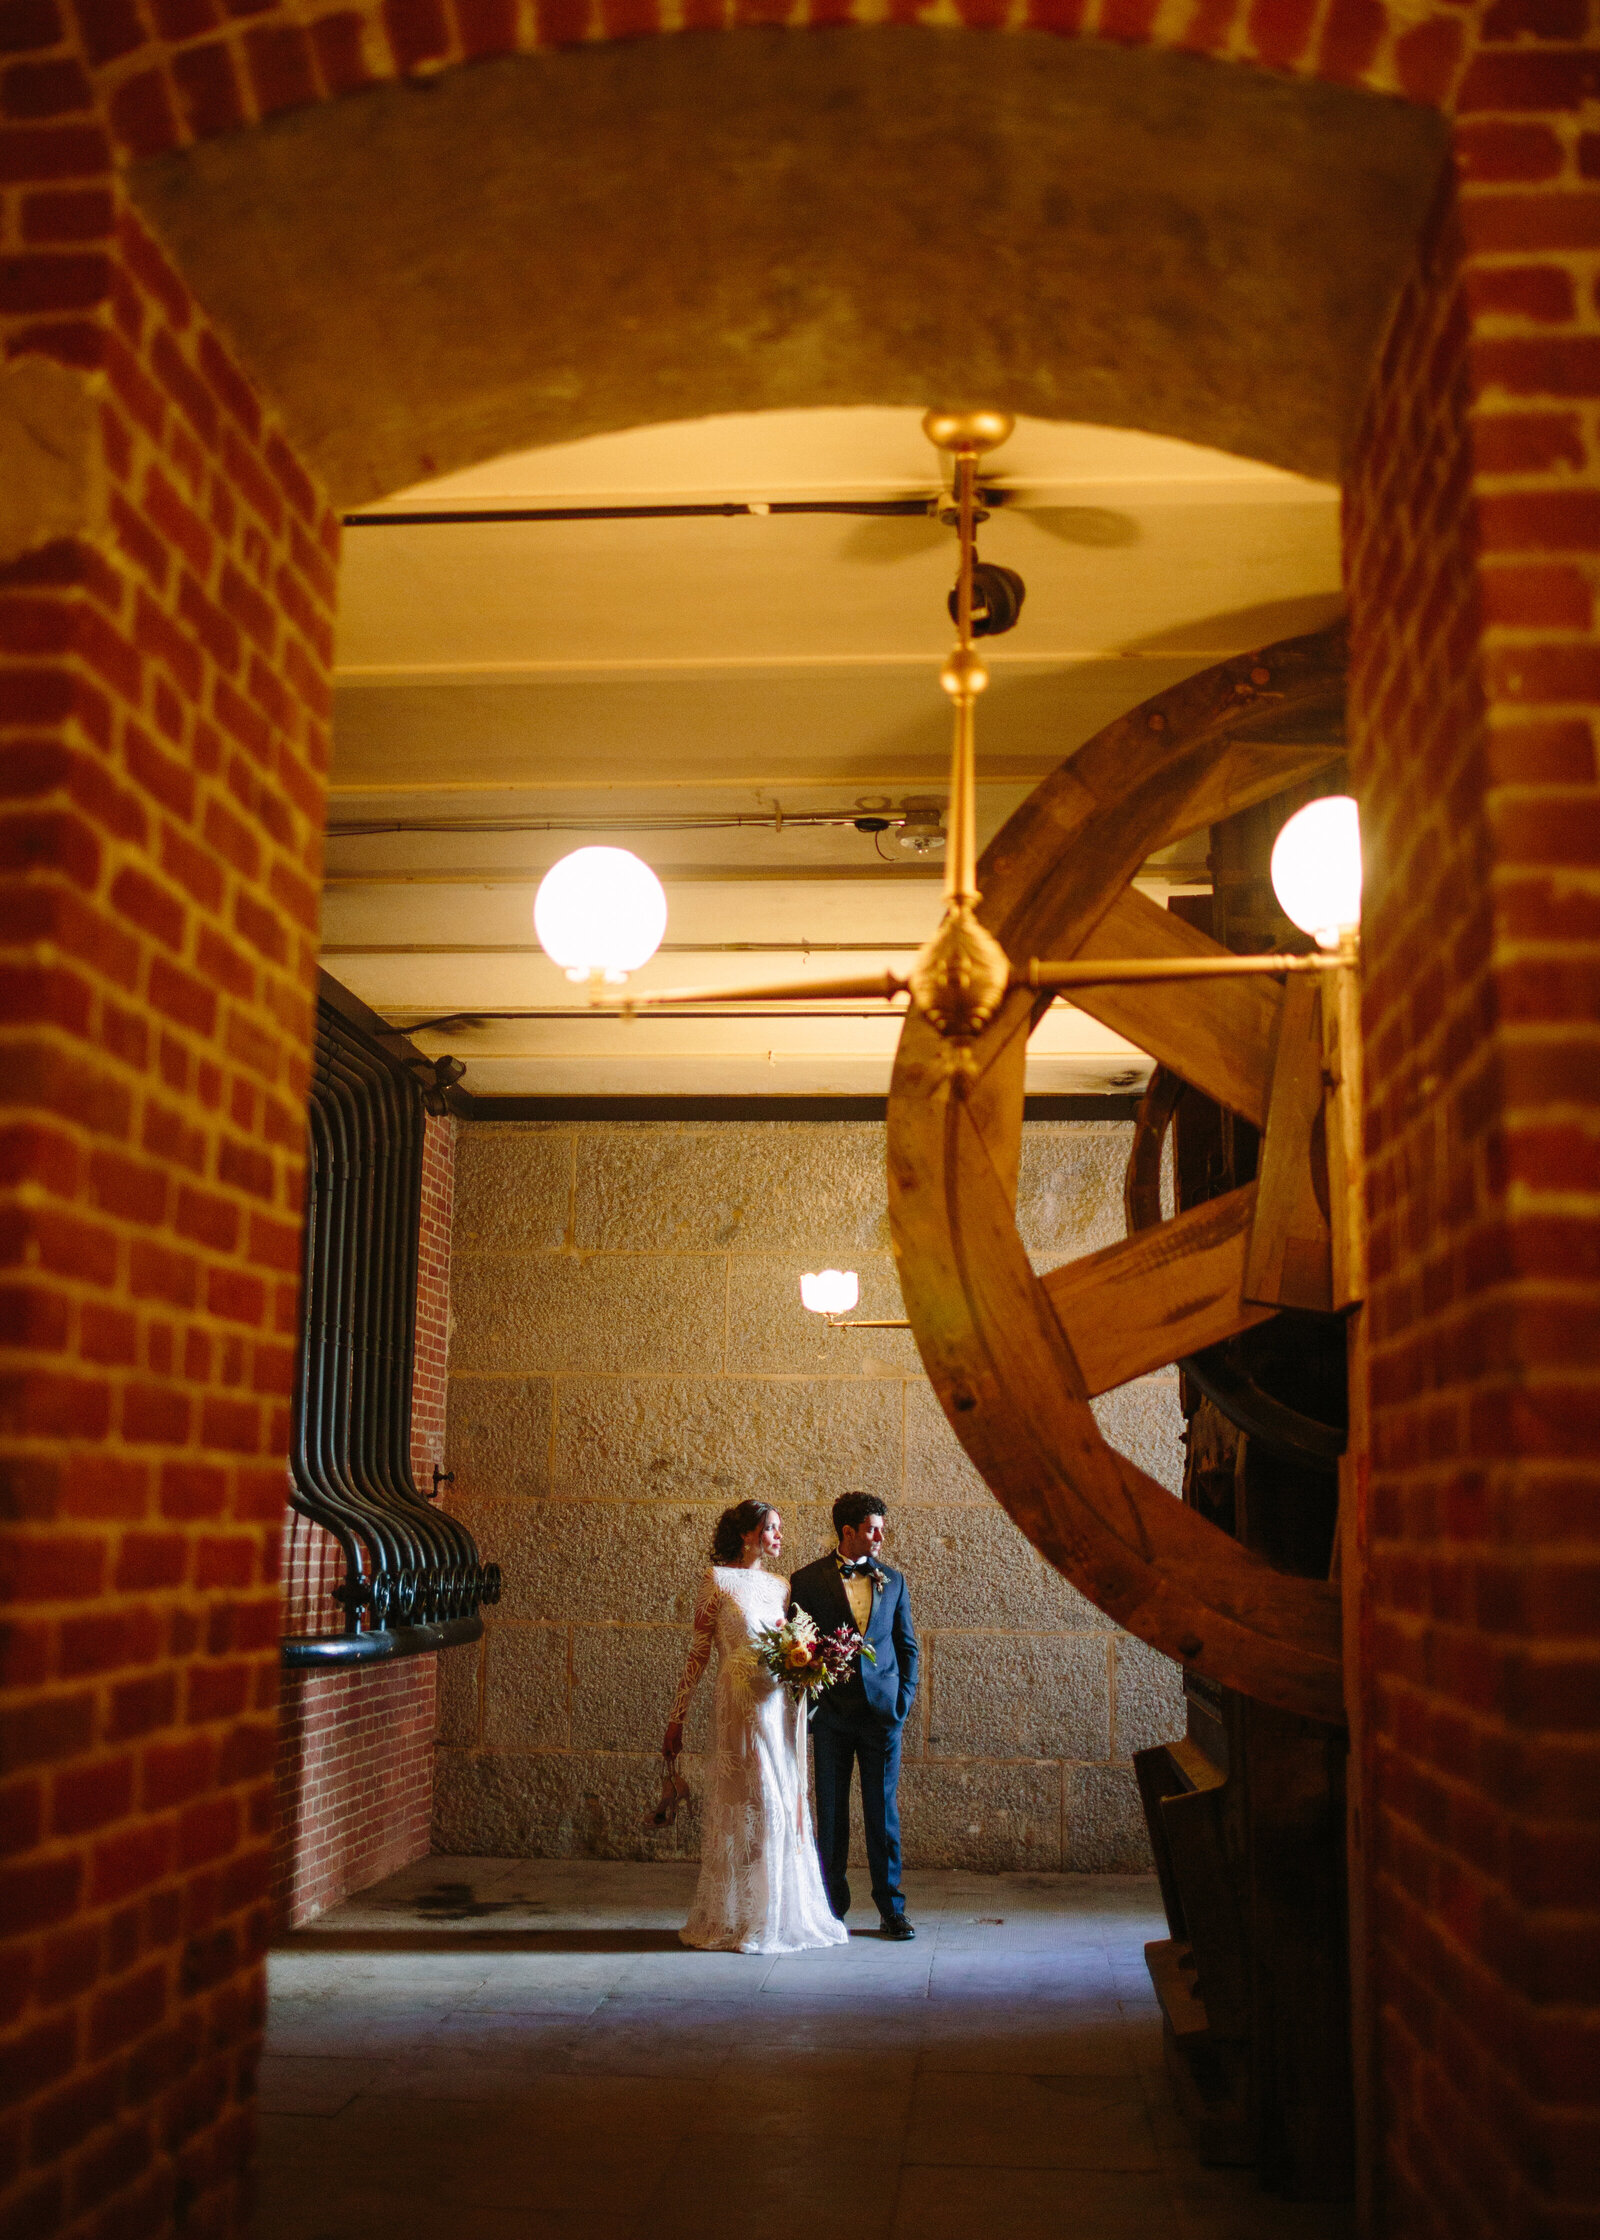 larissa-cleveland-elope-eleopement-intimate-wedding-photographer-san-francisco-napa-carmel-077